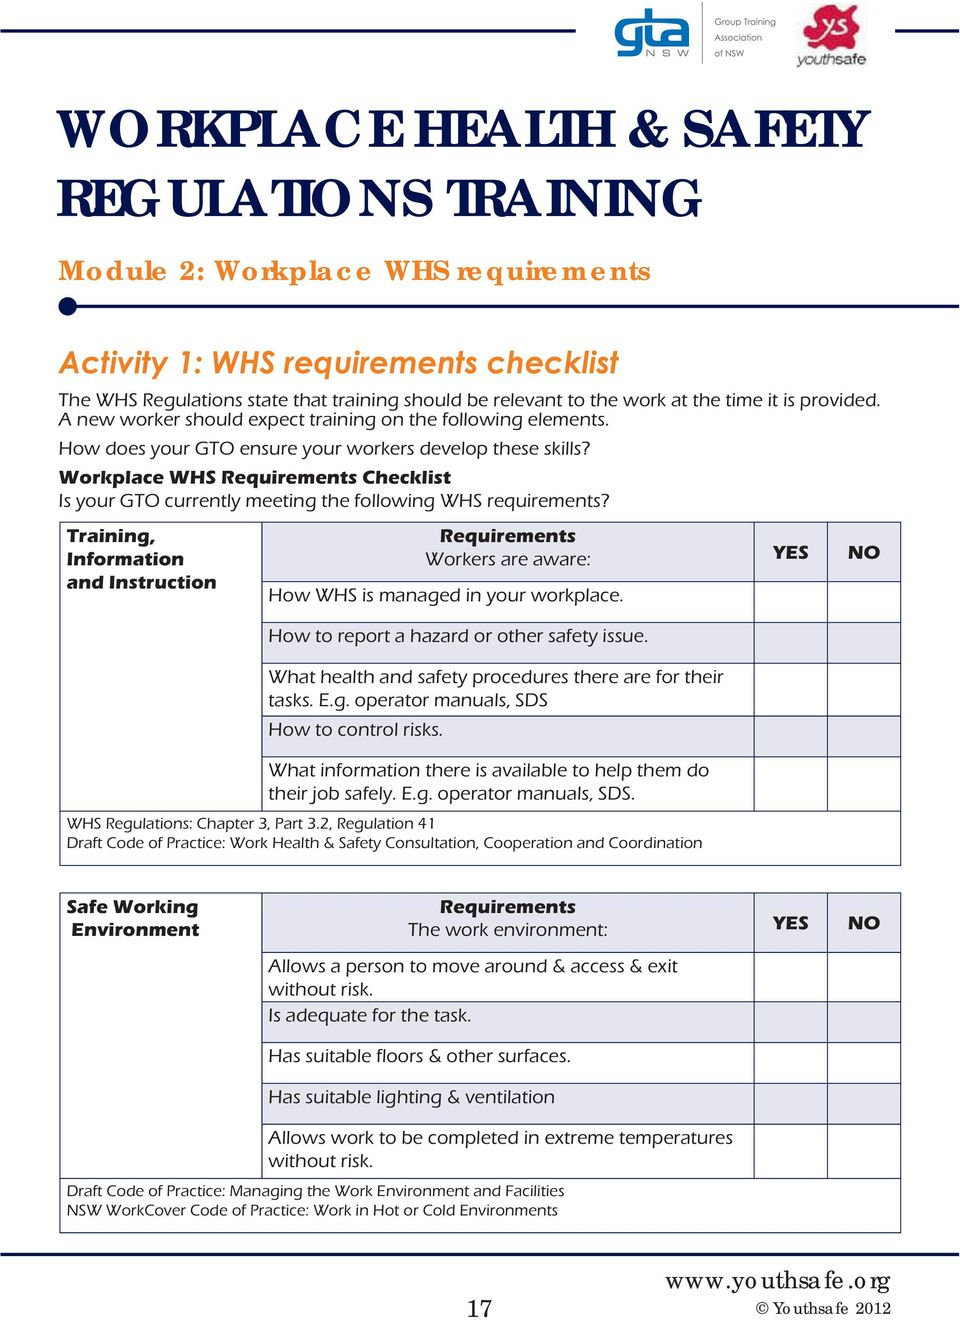 WORKPLACE HEALTH & SAFETY REGULATIONS TRAINING For Managers